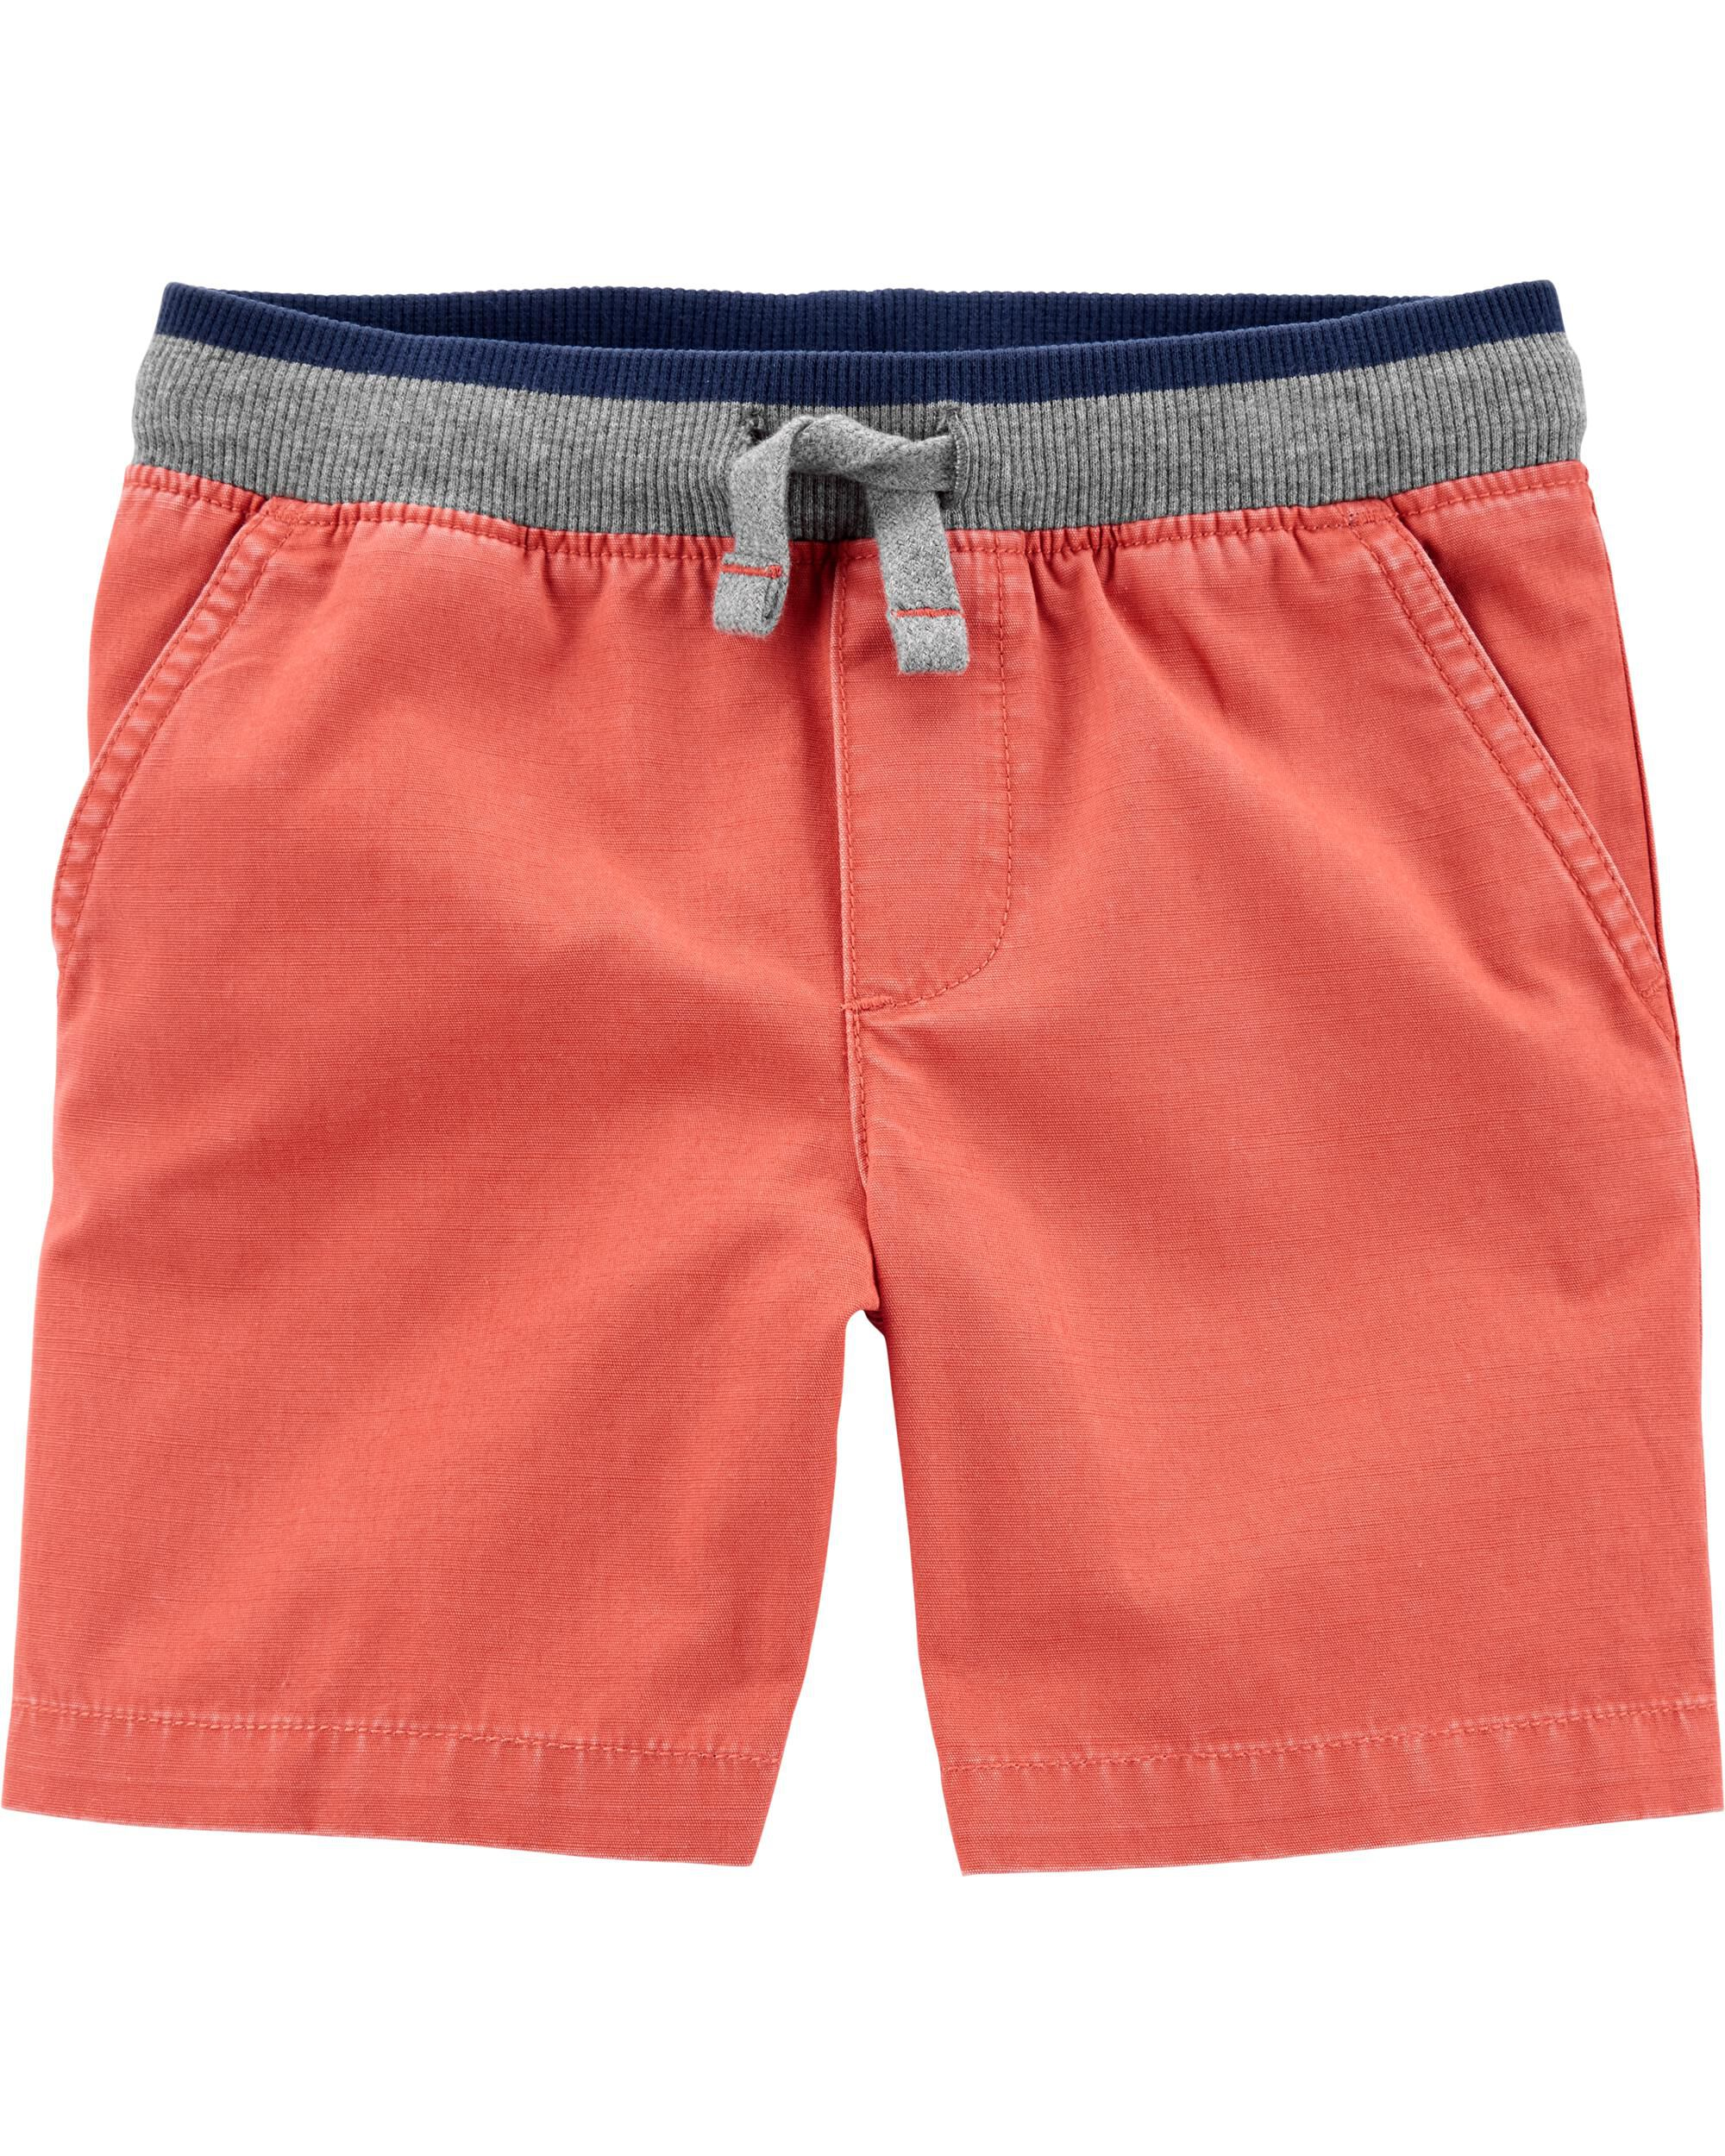 Carters Baby Boys Easy Pull-On Mesh Shorts 3 Months